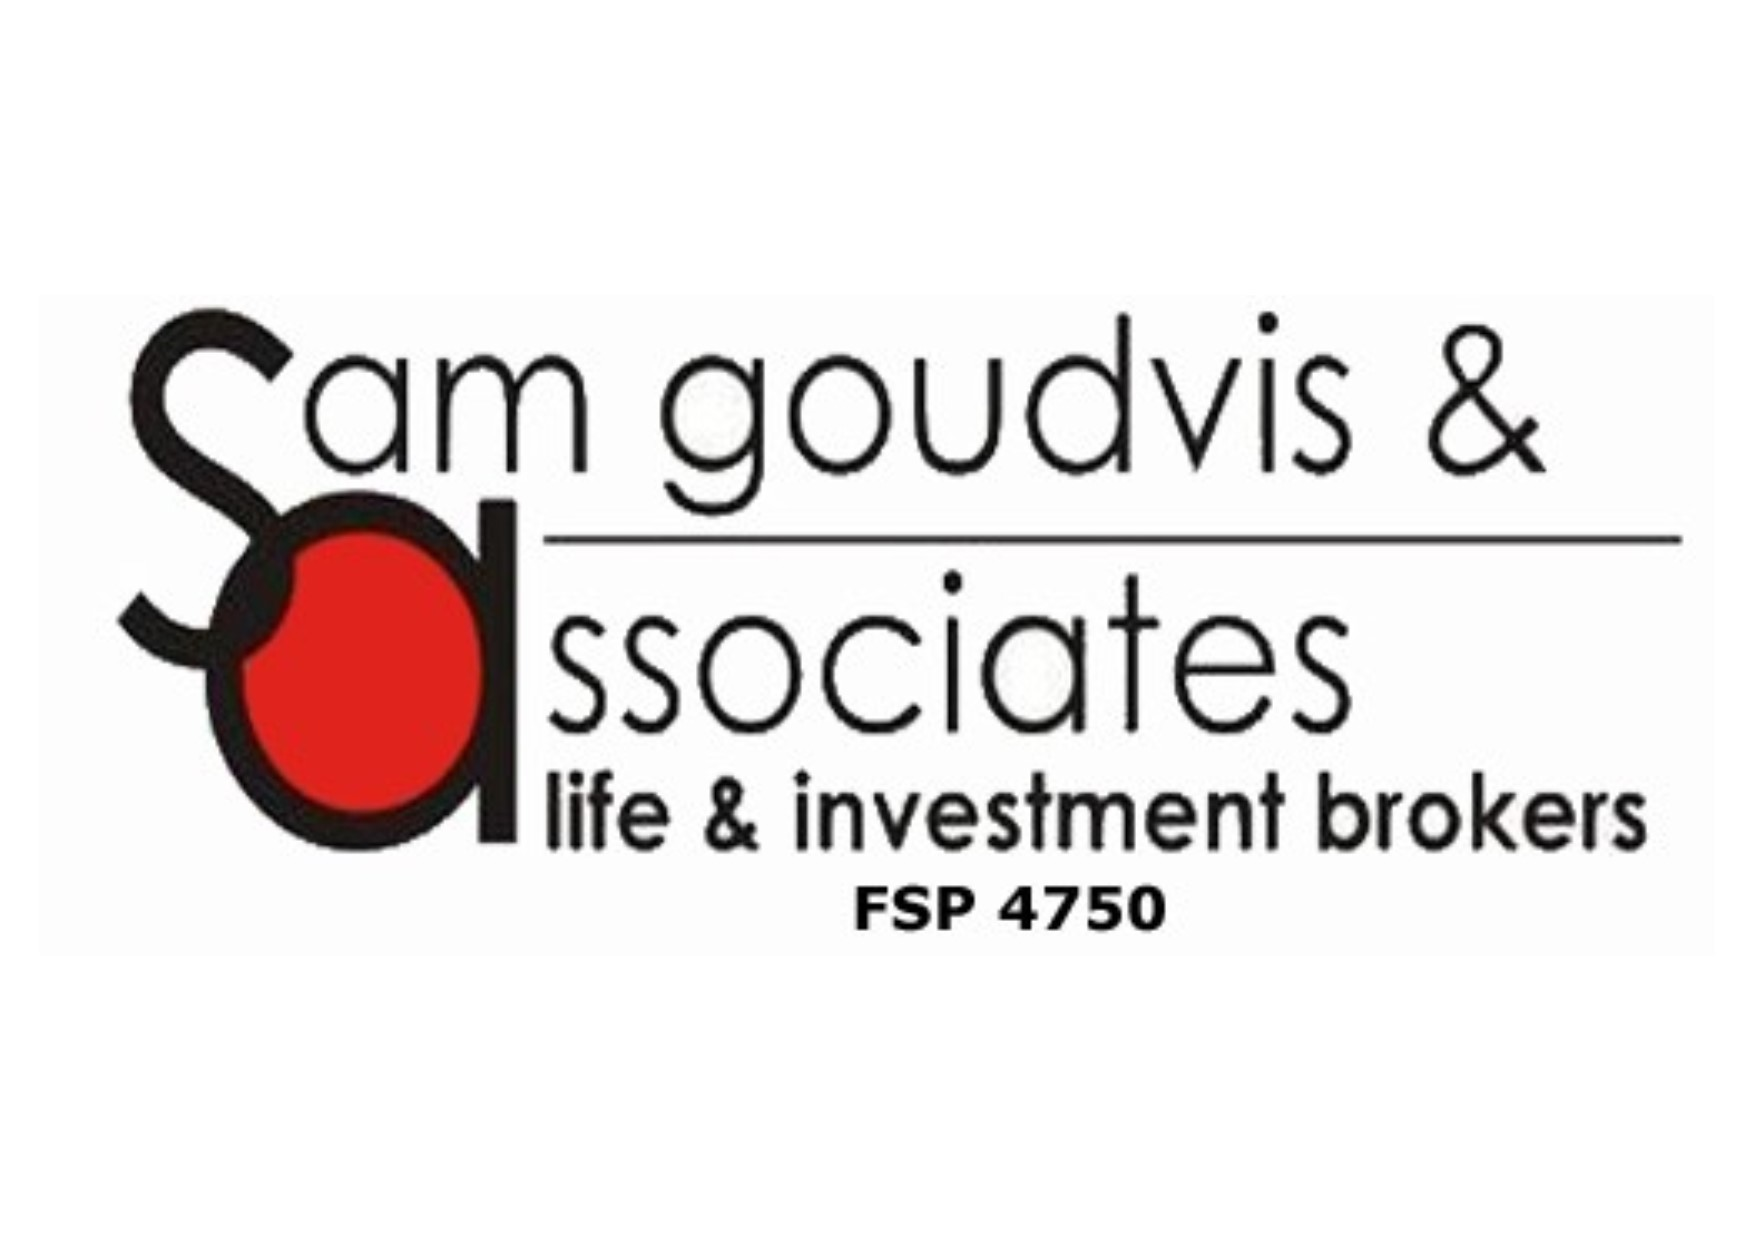 Sam Goudvis and Associates